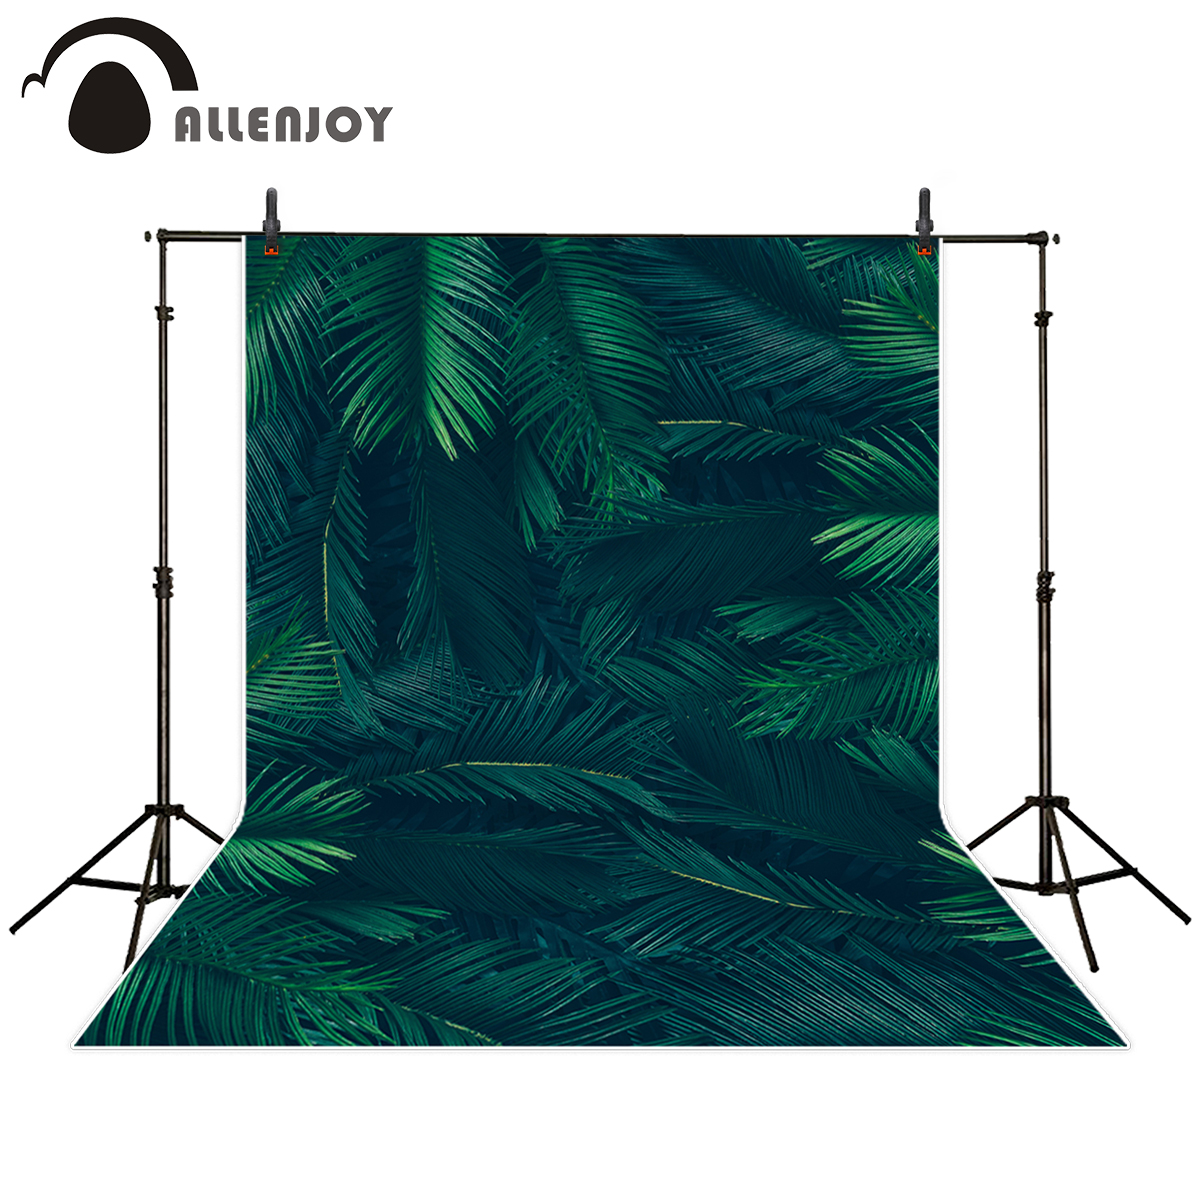 Allenjoy photography background tropical green leaves room decoration backdrop photobooth photo studio portrait shooting